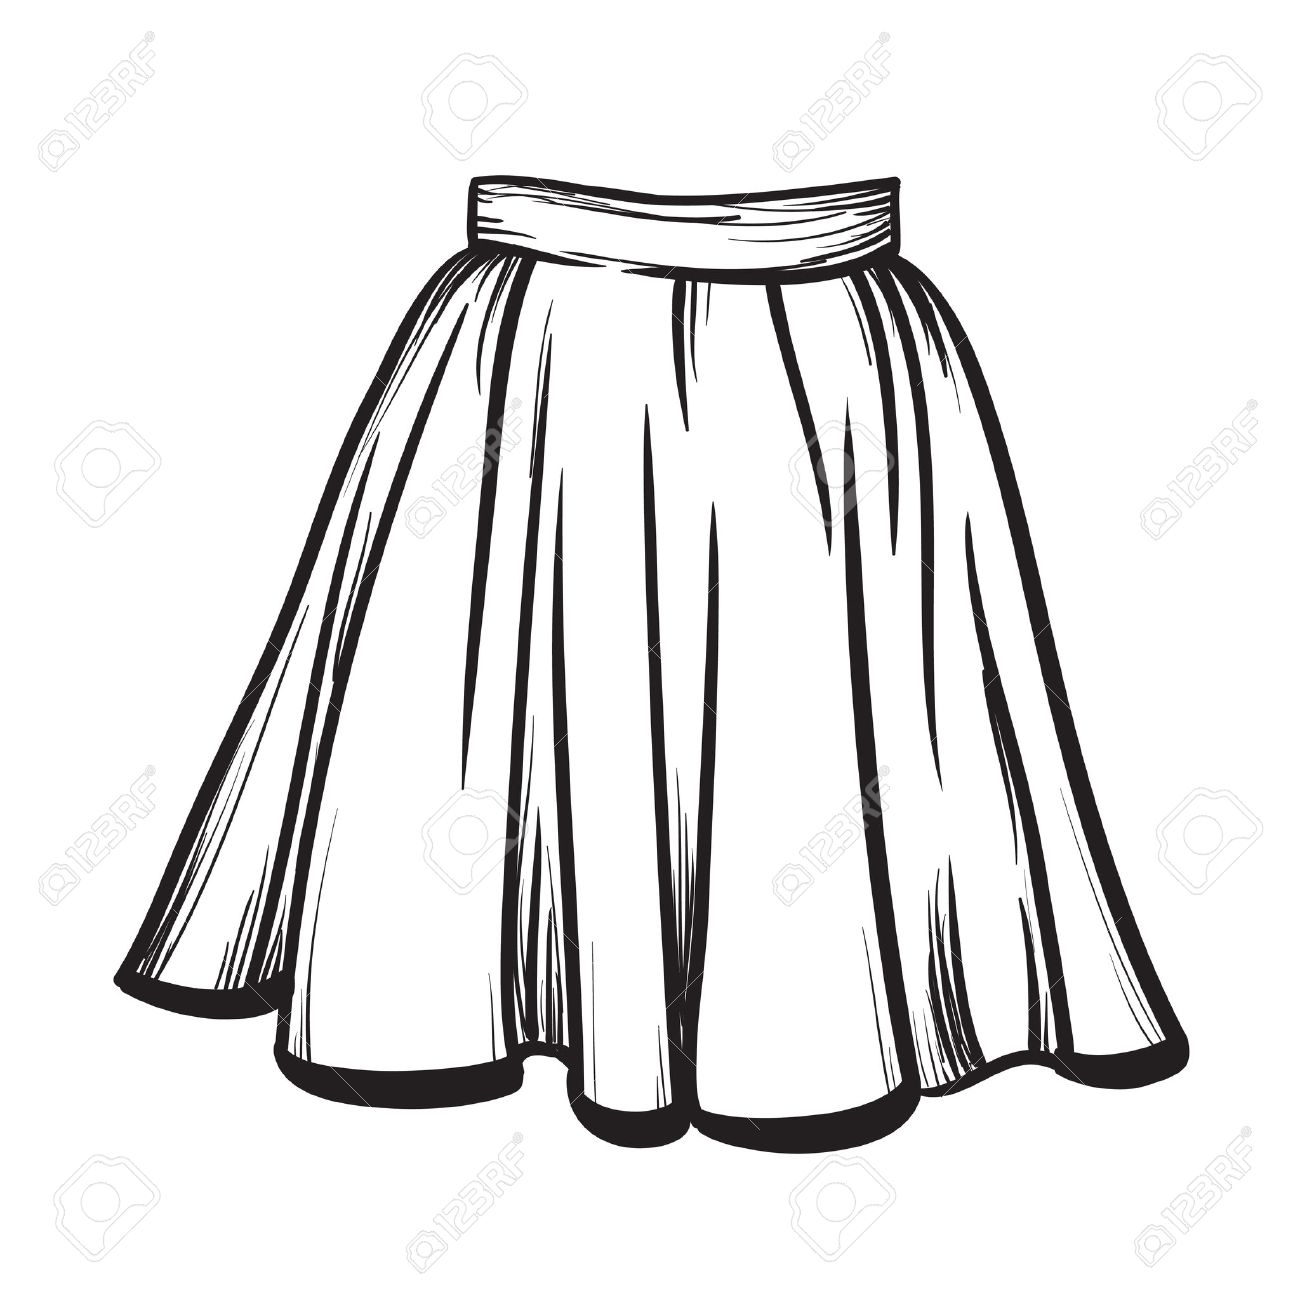 Skirt clipart black and white vector royalty free Skirt black and white clipart 1 » Clipart Station vector royalty free